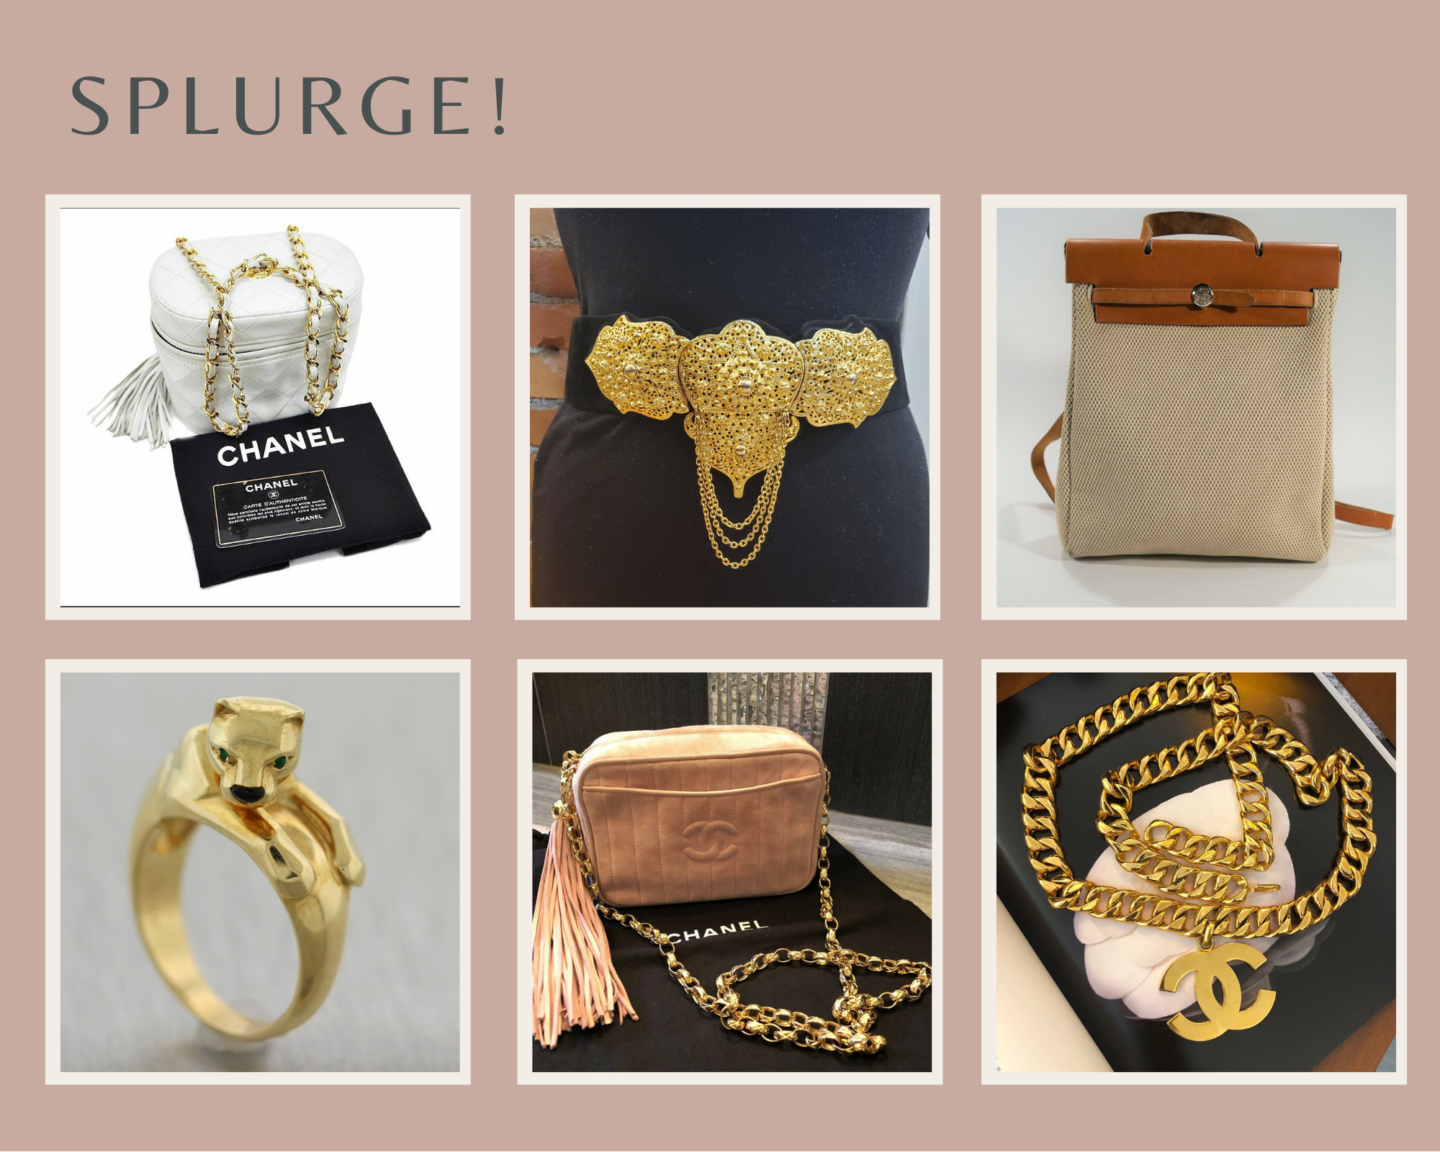 vintage items to splurge on gift guide